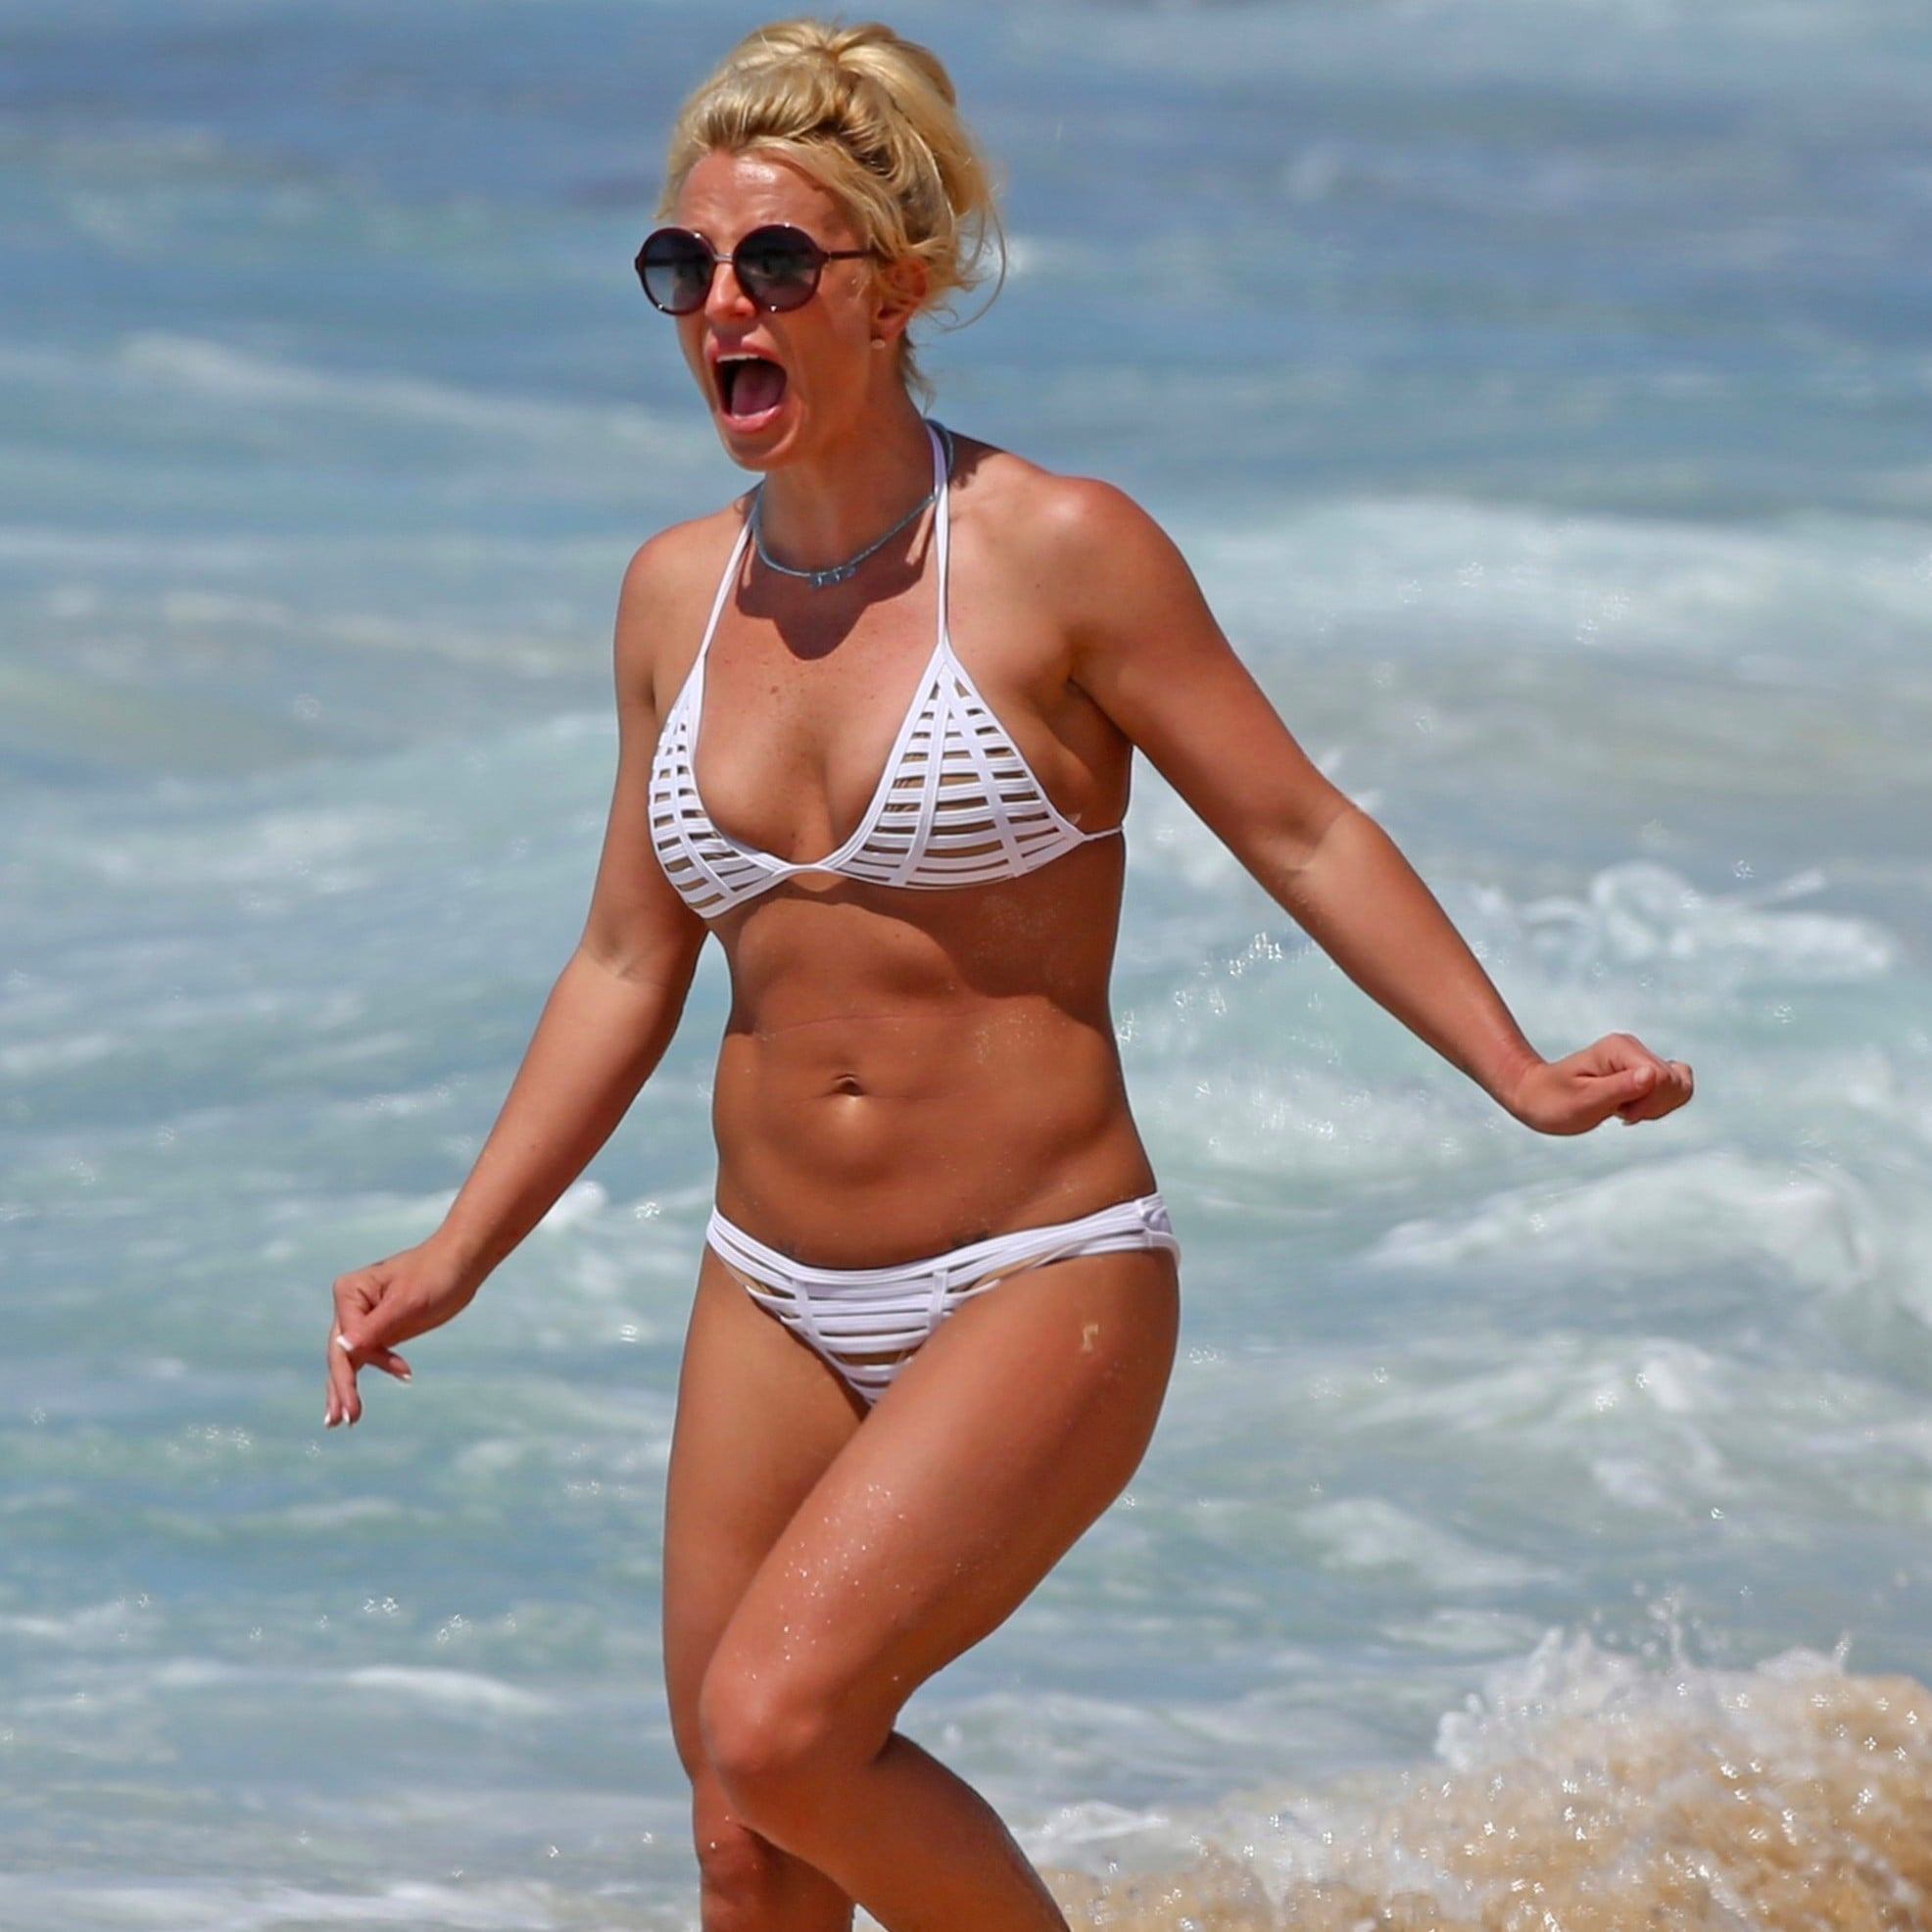 Britney spears bikini right! seems